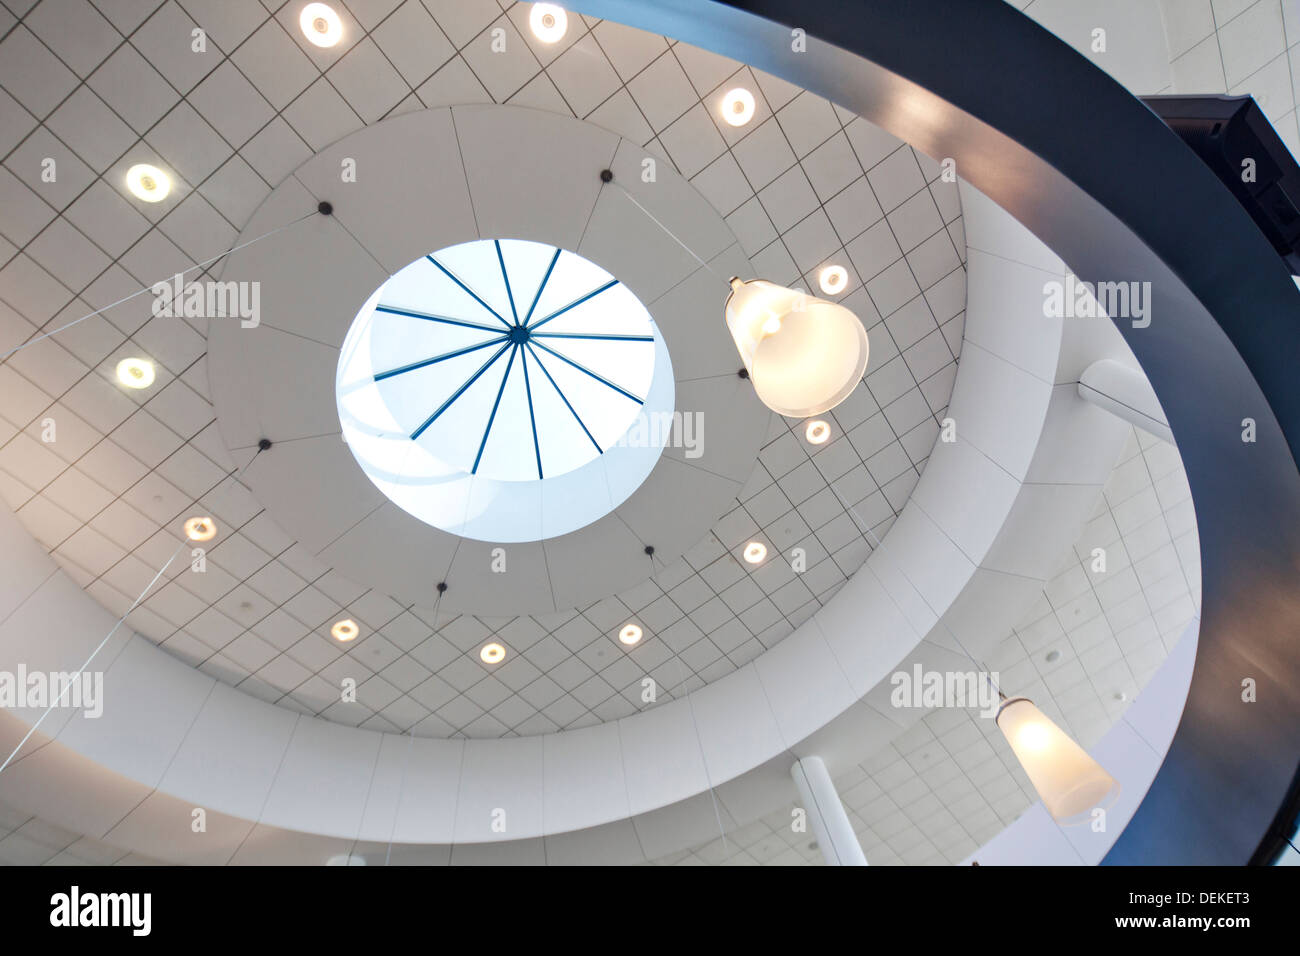 Recessed lights and skylight in domed ceiling - Stock Image